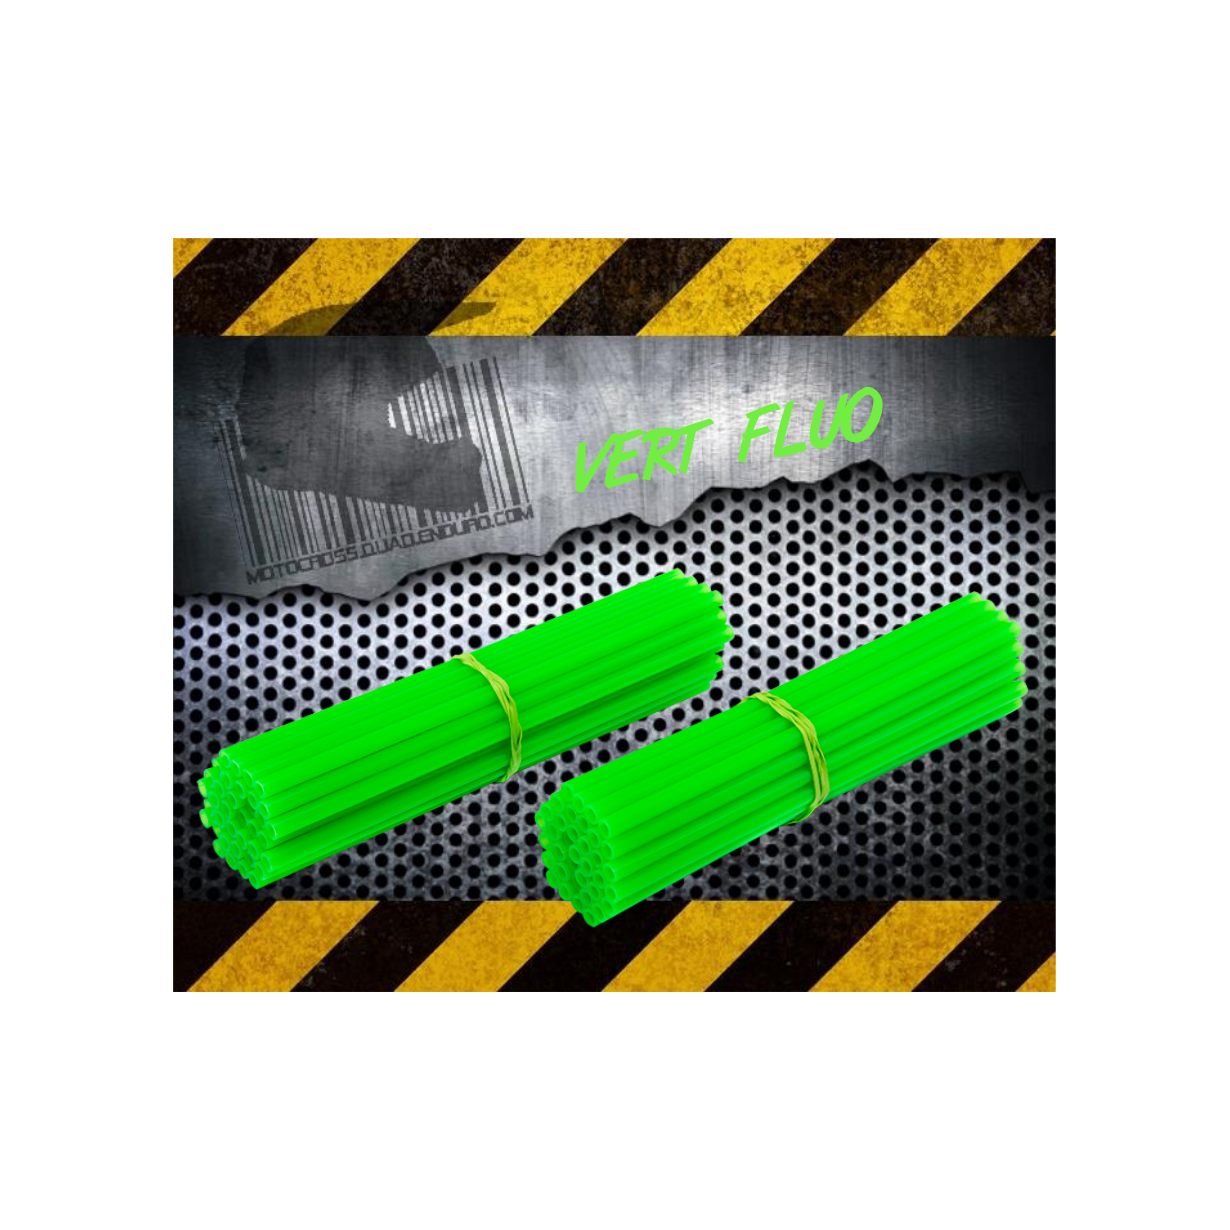 Couvres rayons vert fluo spoke coats spoke skins 3